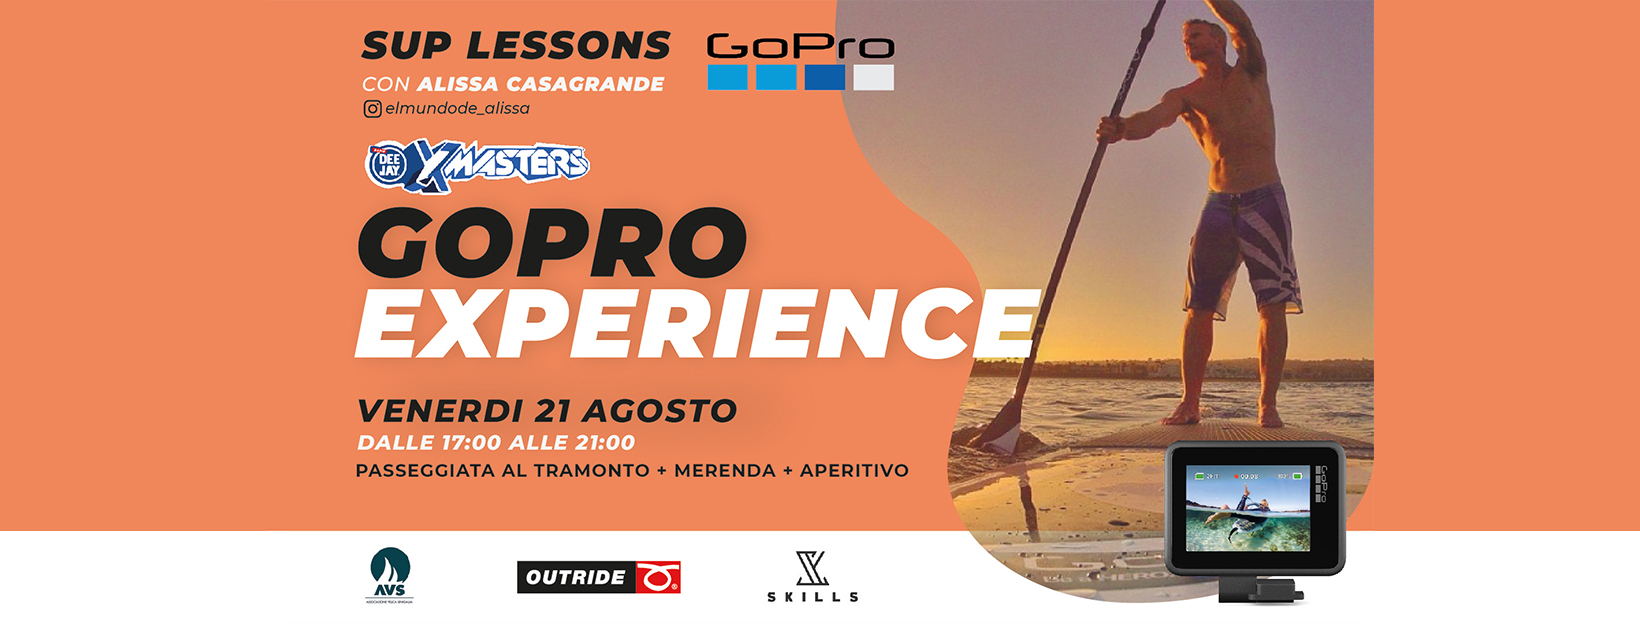 gopro sup experience